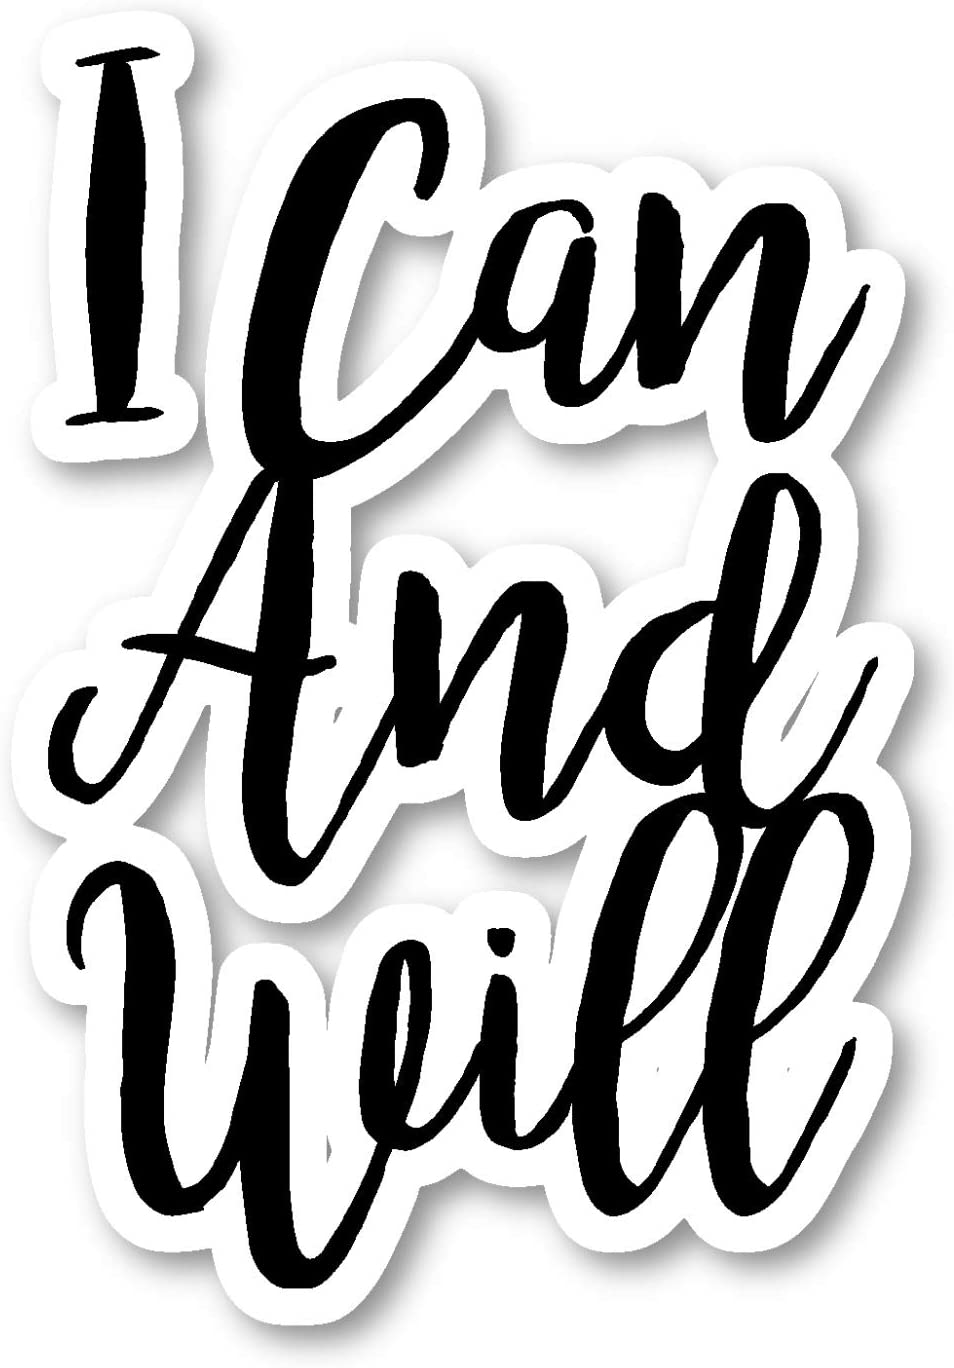 "I Can and Will Sticker Inspirational Quotes Stickers - Laptop Stickers -"" Vinyl Decal - Laptop, Phone, Tablet Vinyl Decal Sticker S82173"